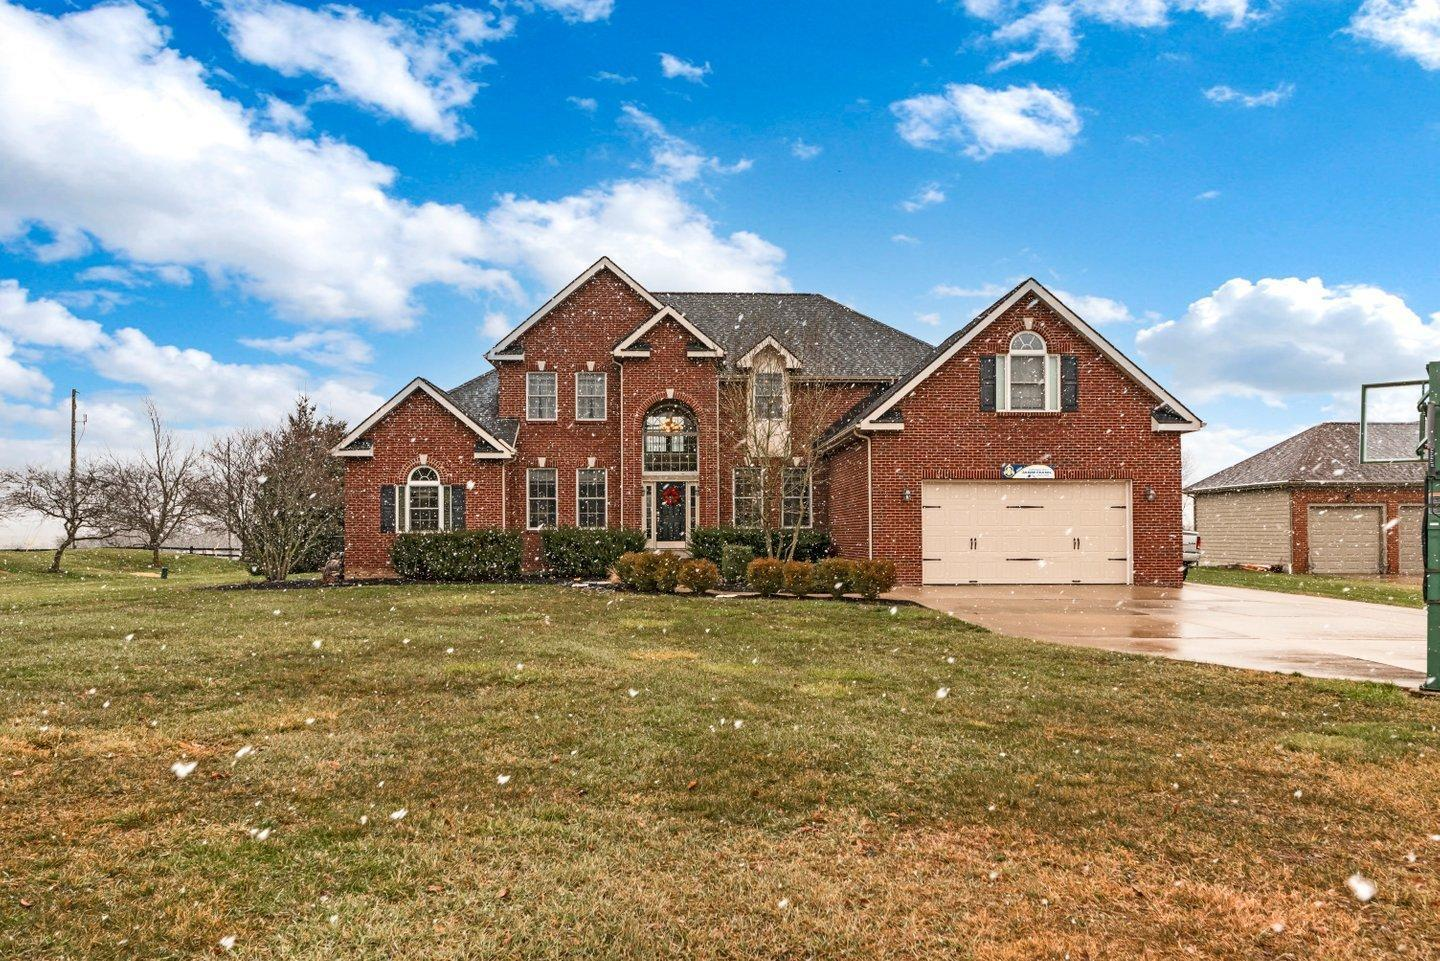 Photo of 3730 Woodstone Drive, Lewis Center, OH 43035